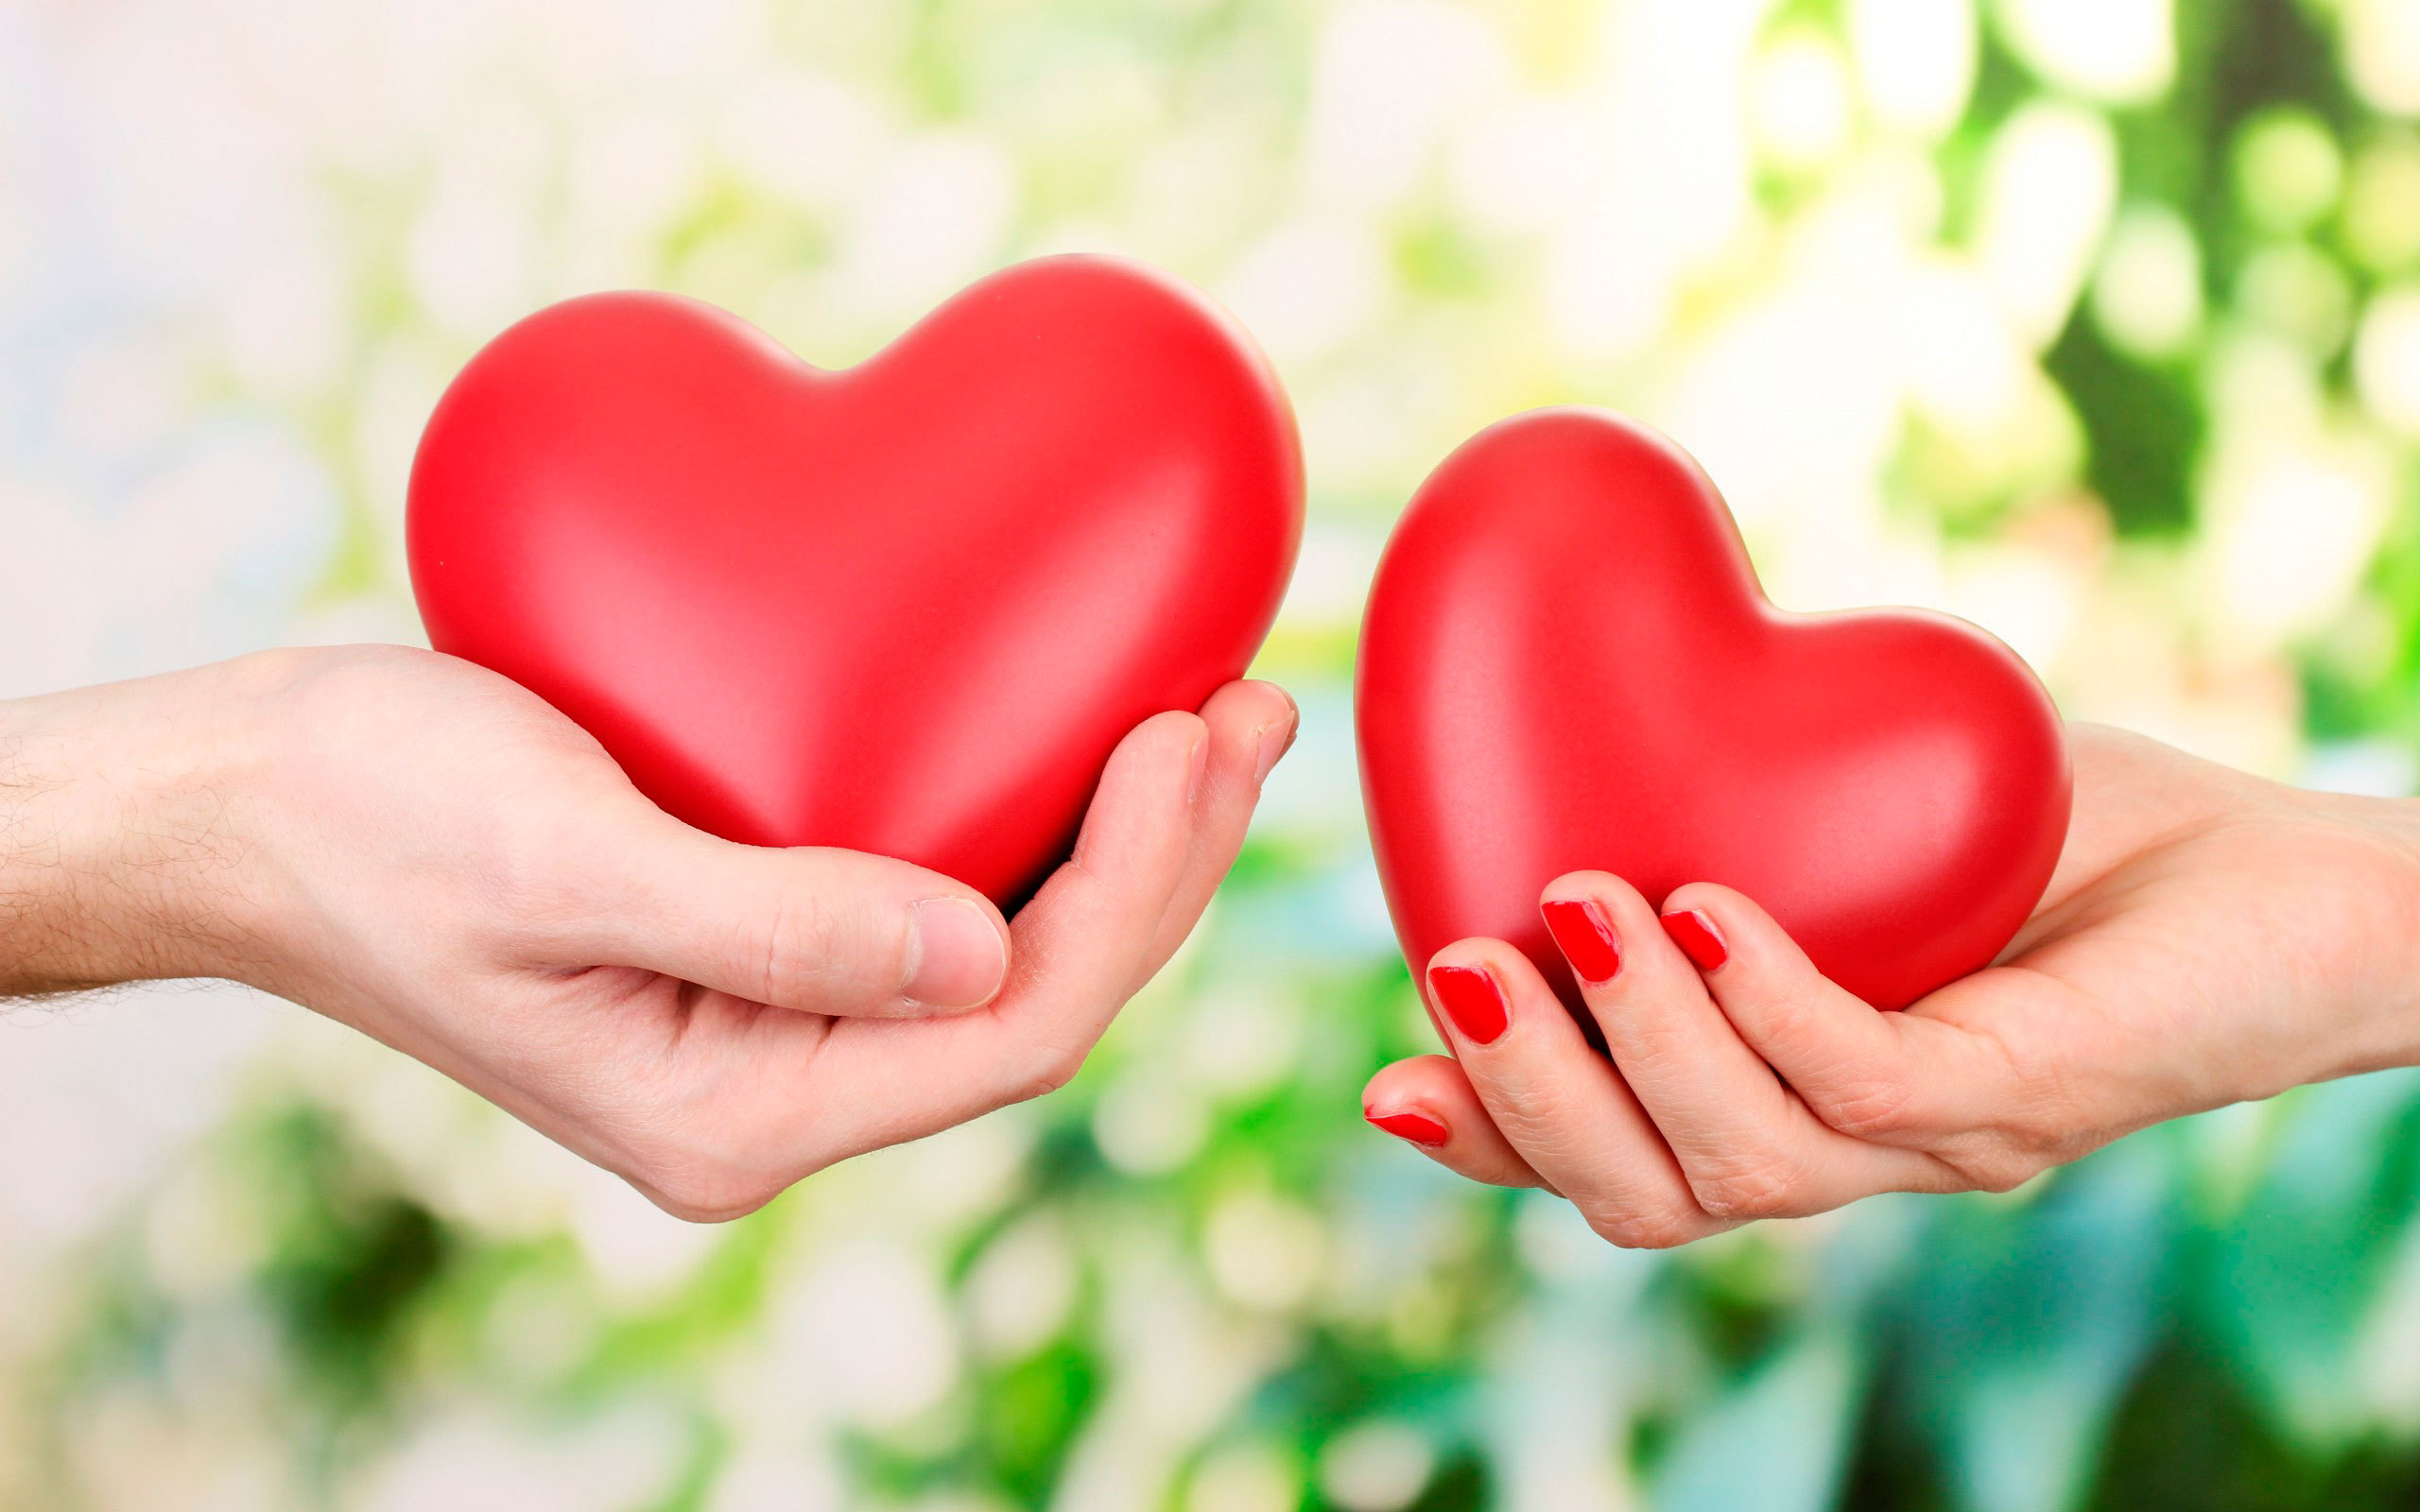 Cute Heart Hands Wallpaper